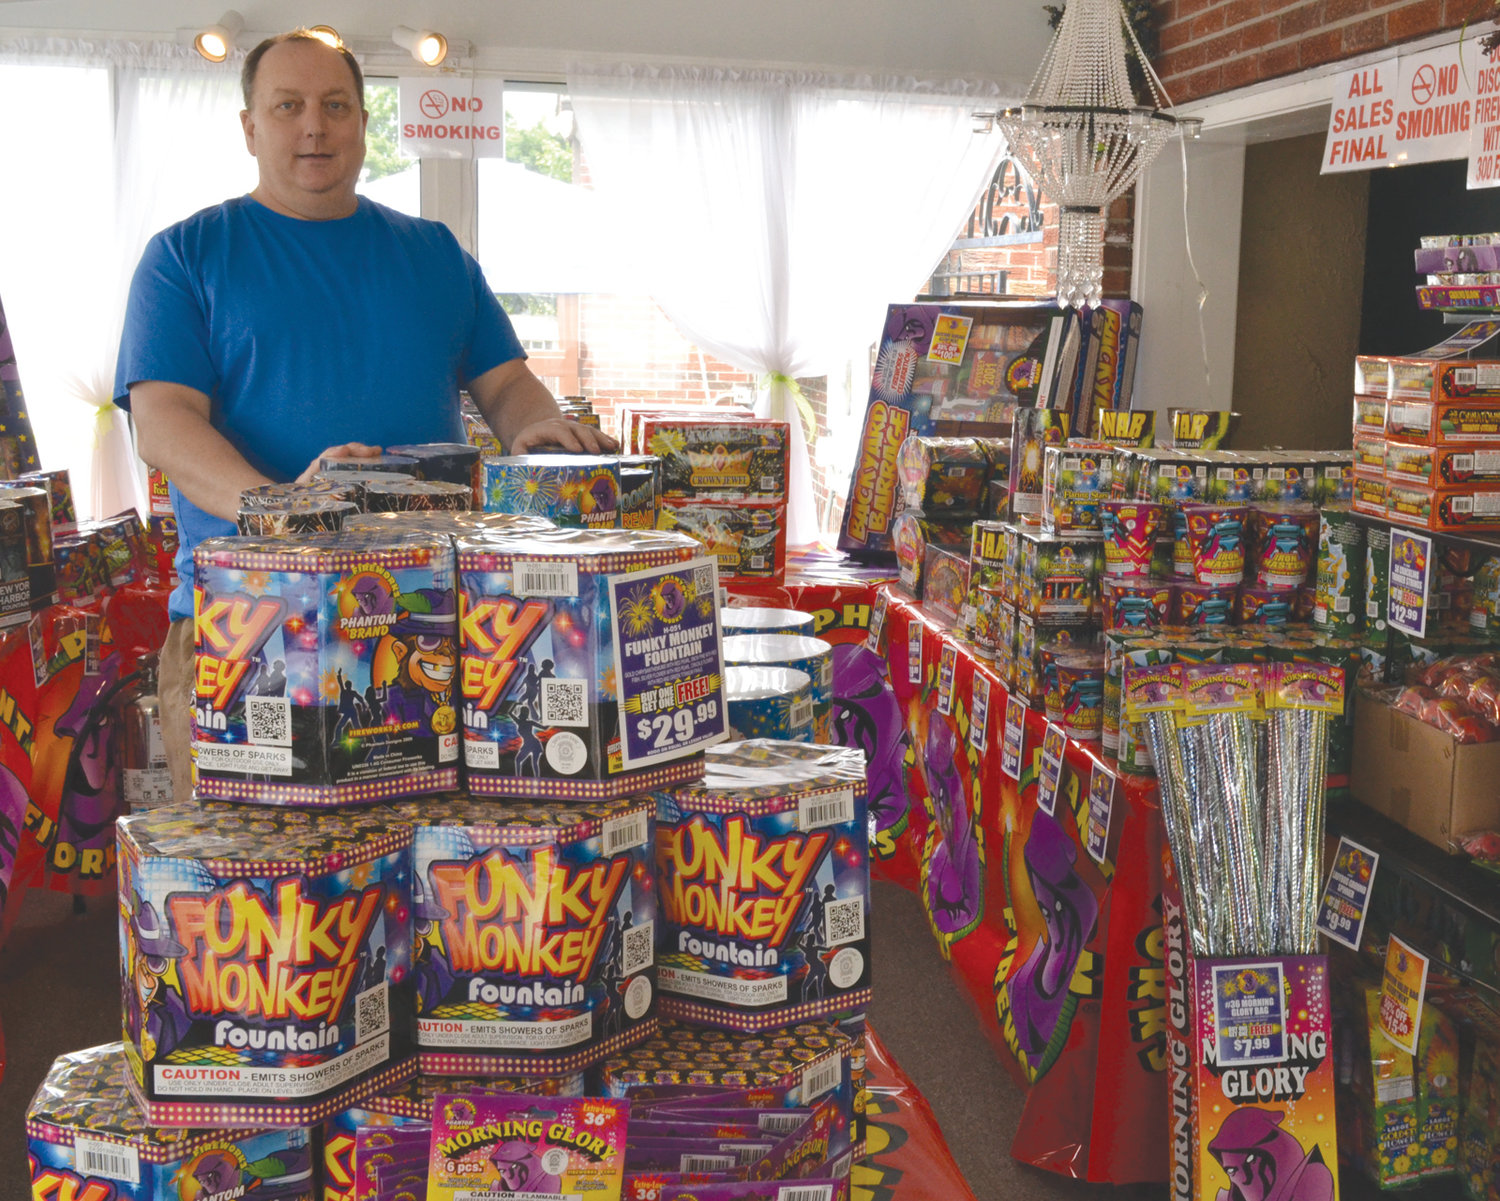 John Dick stands among a few of the many fireworks he offers at Atwood Florist.